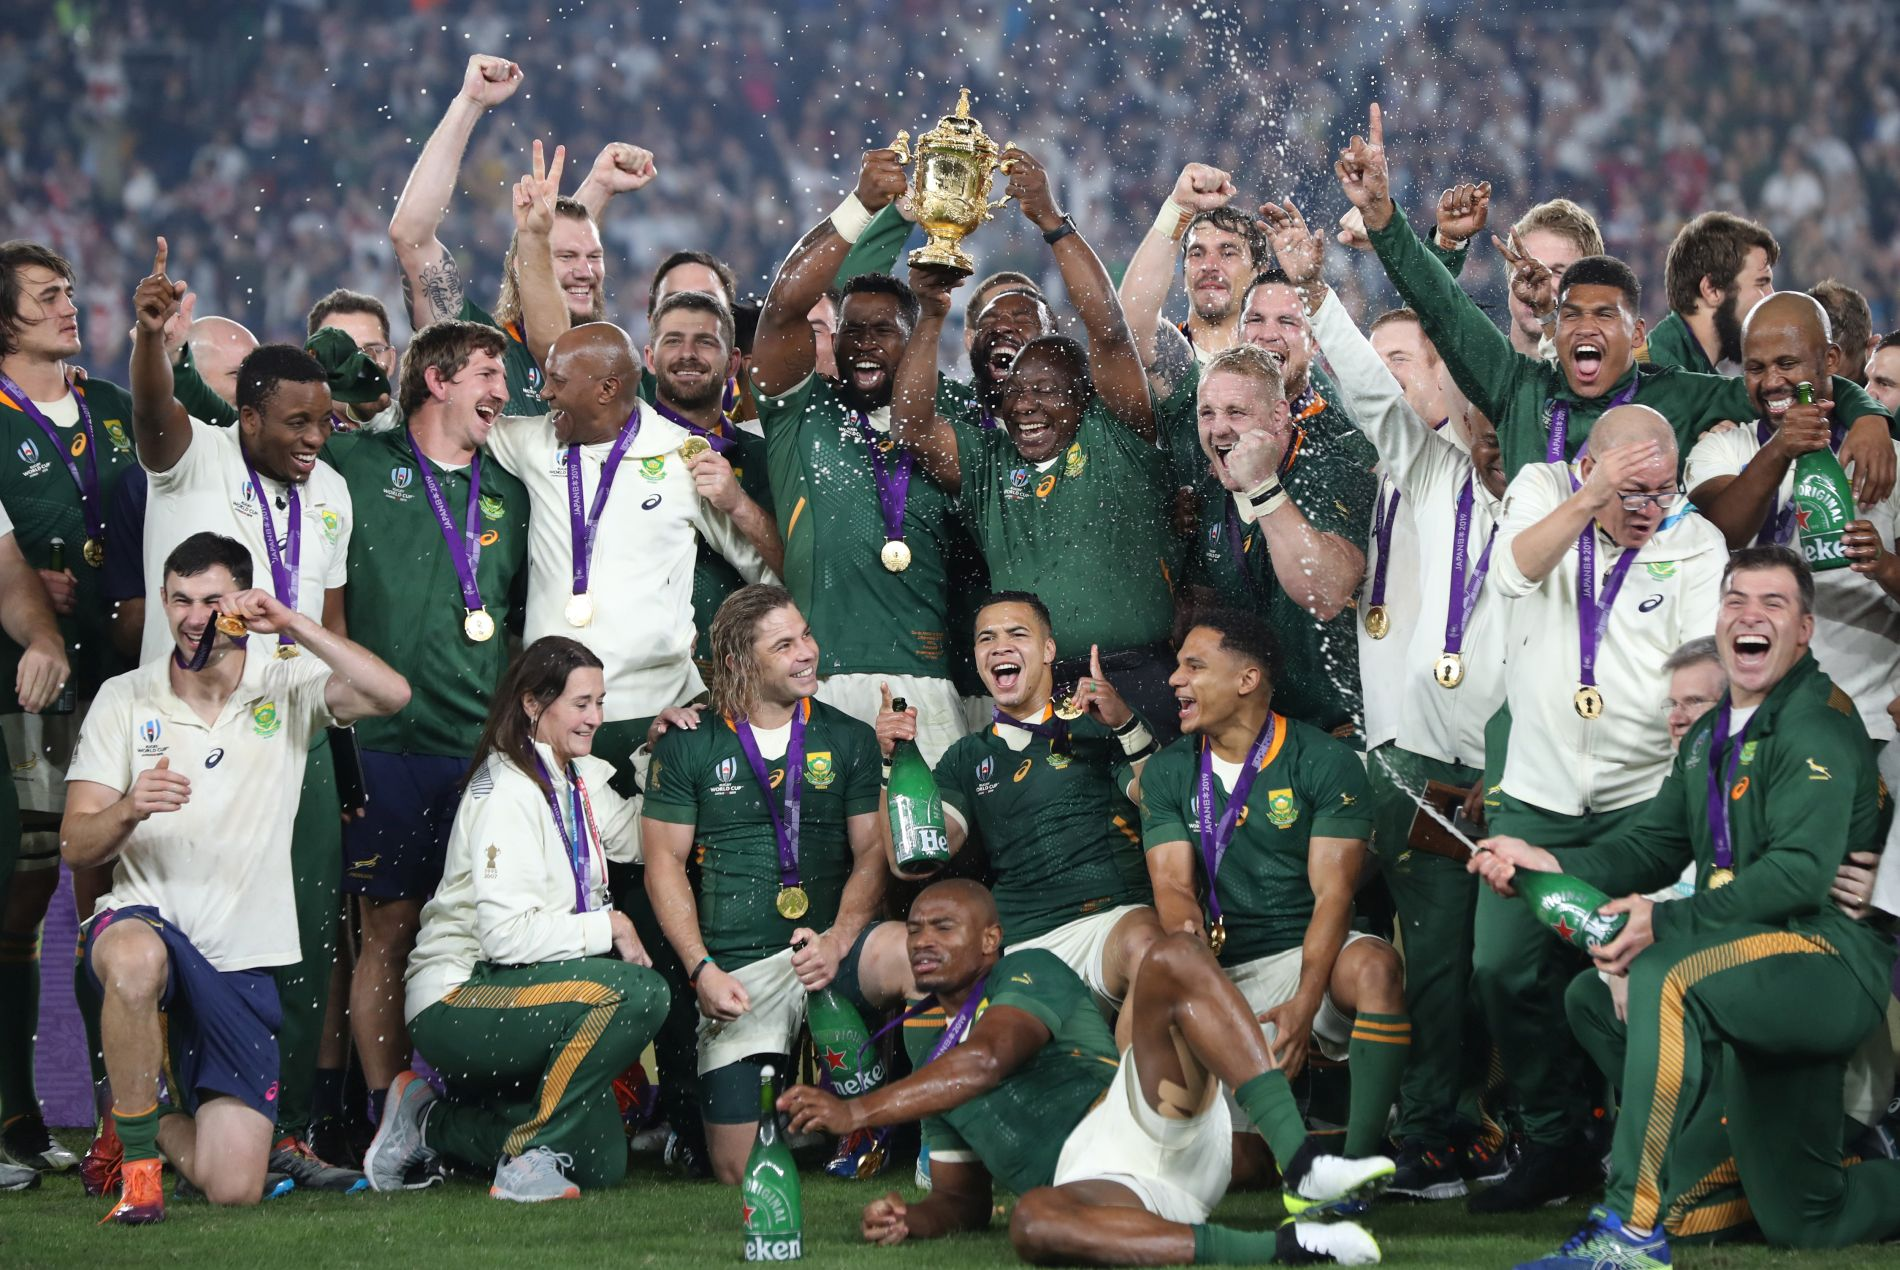 Rugby World Cup Final South Africa vs England